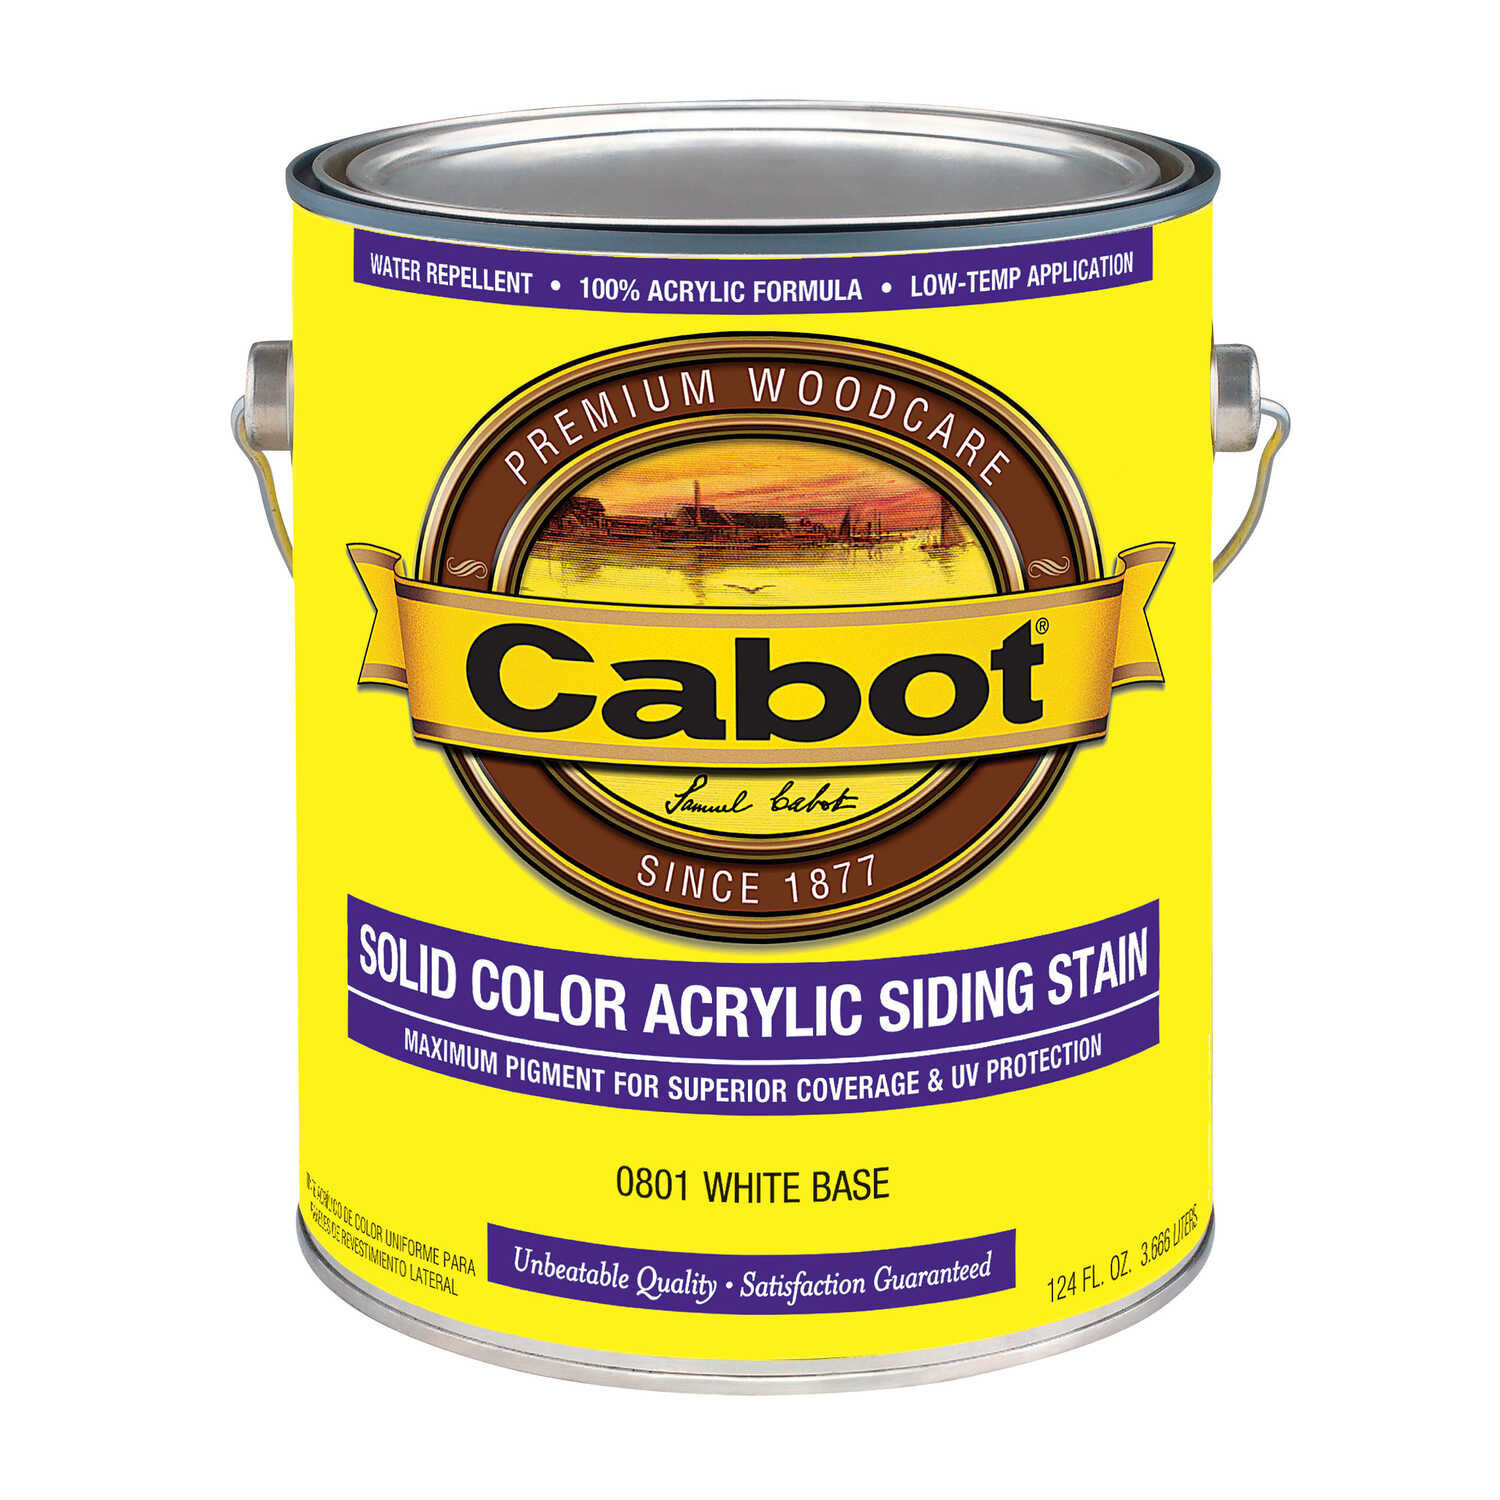 Cabot  Solid  Tintable White Base  Water-Based  Acrylic  Siding Stain  1 gal.